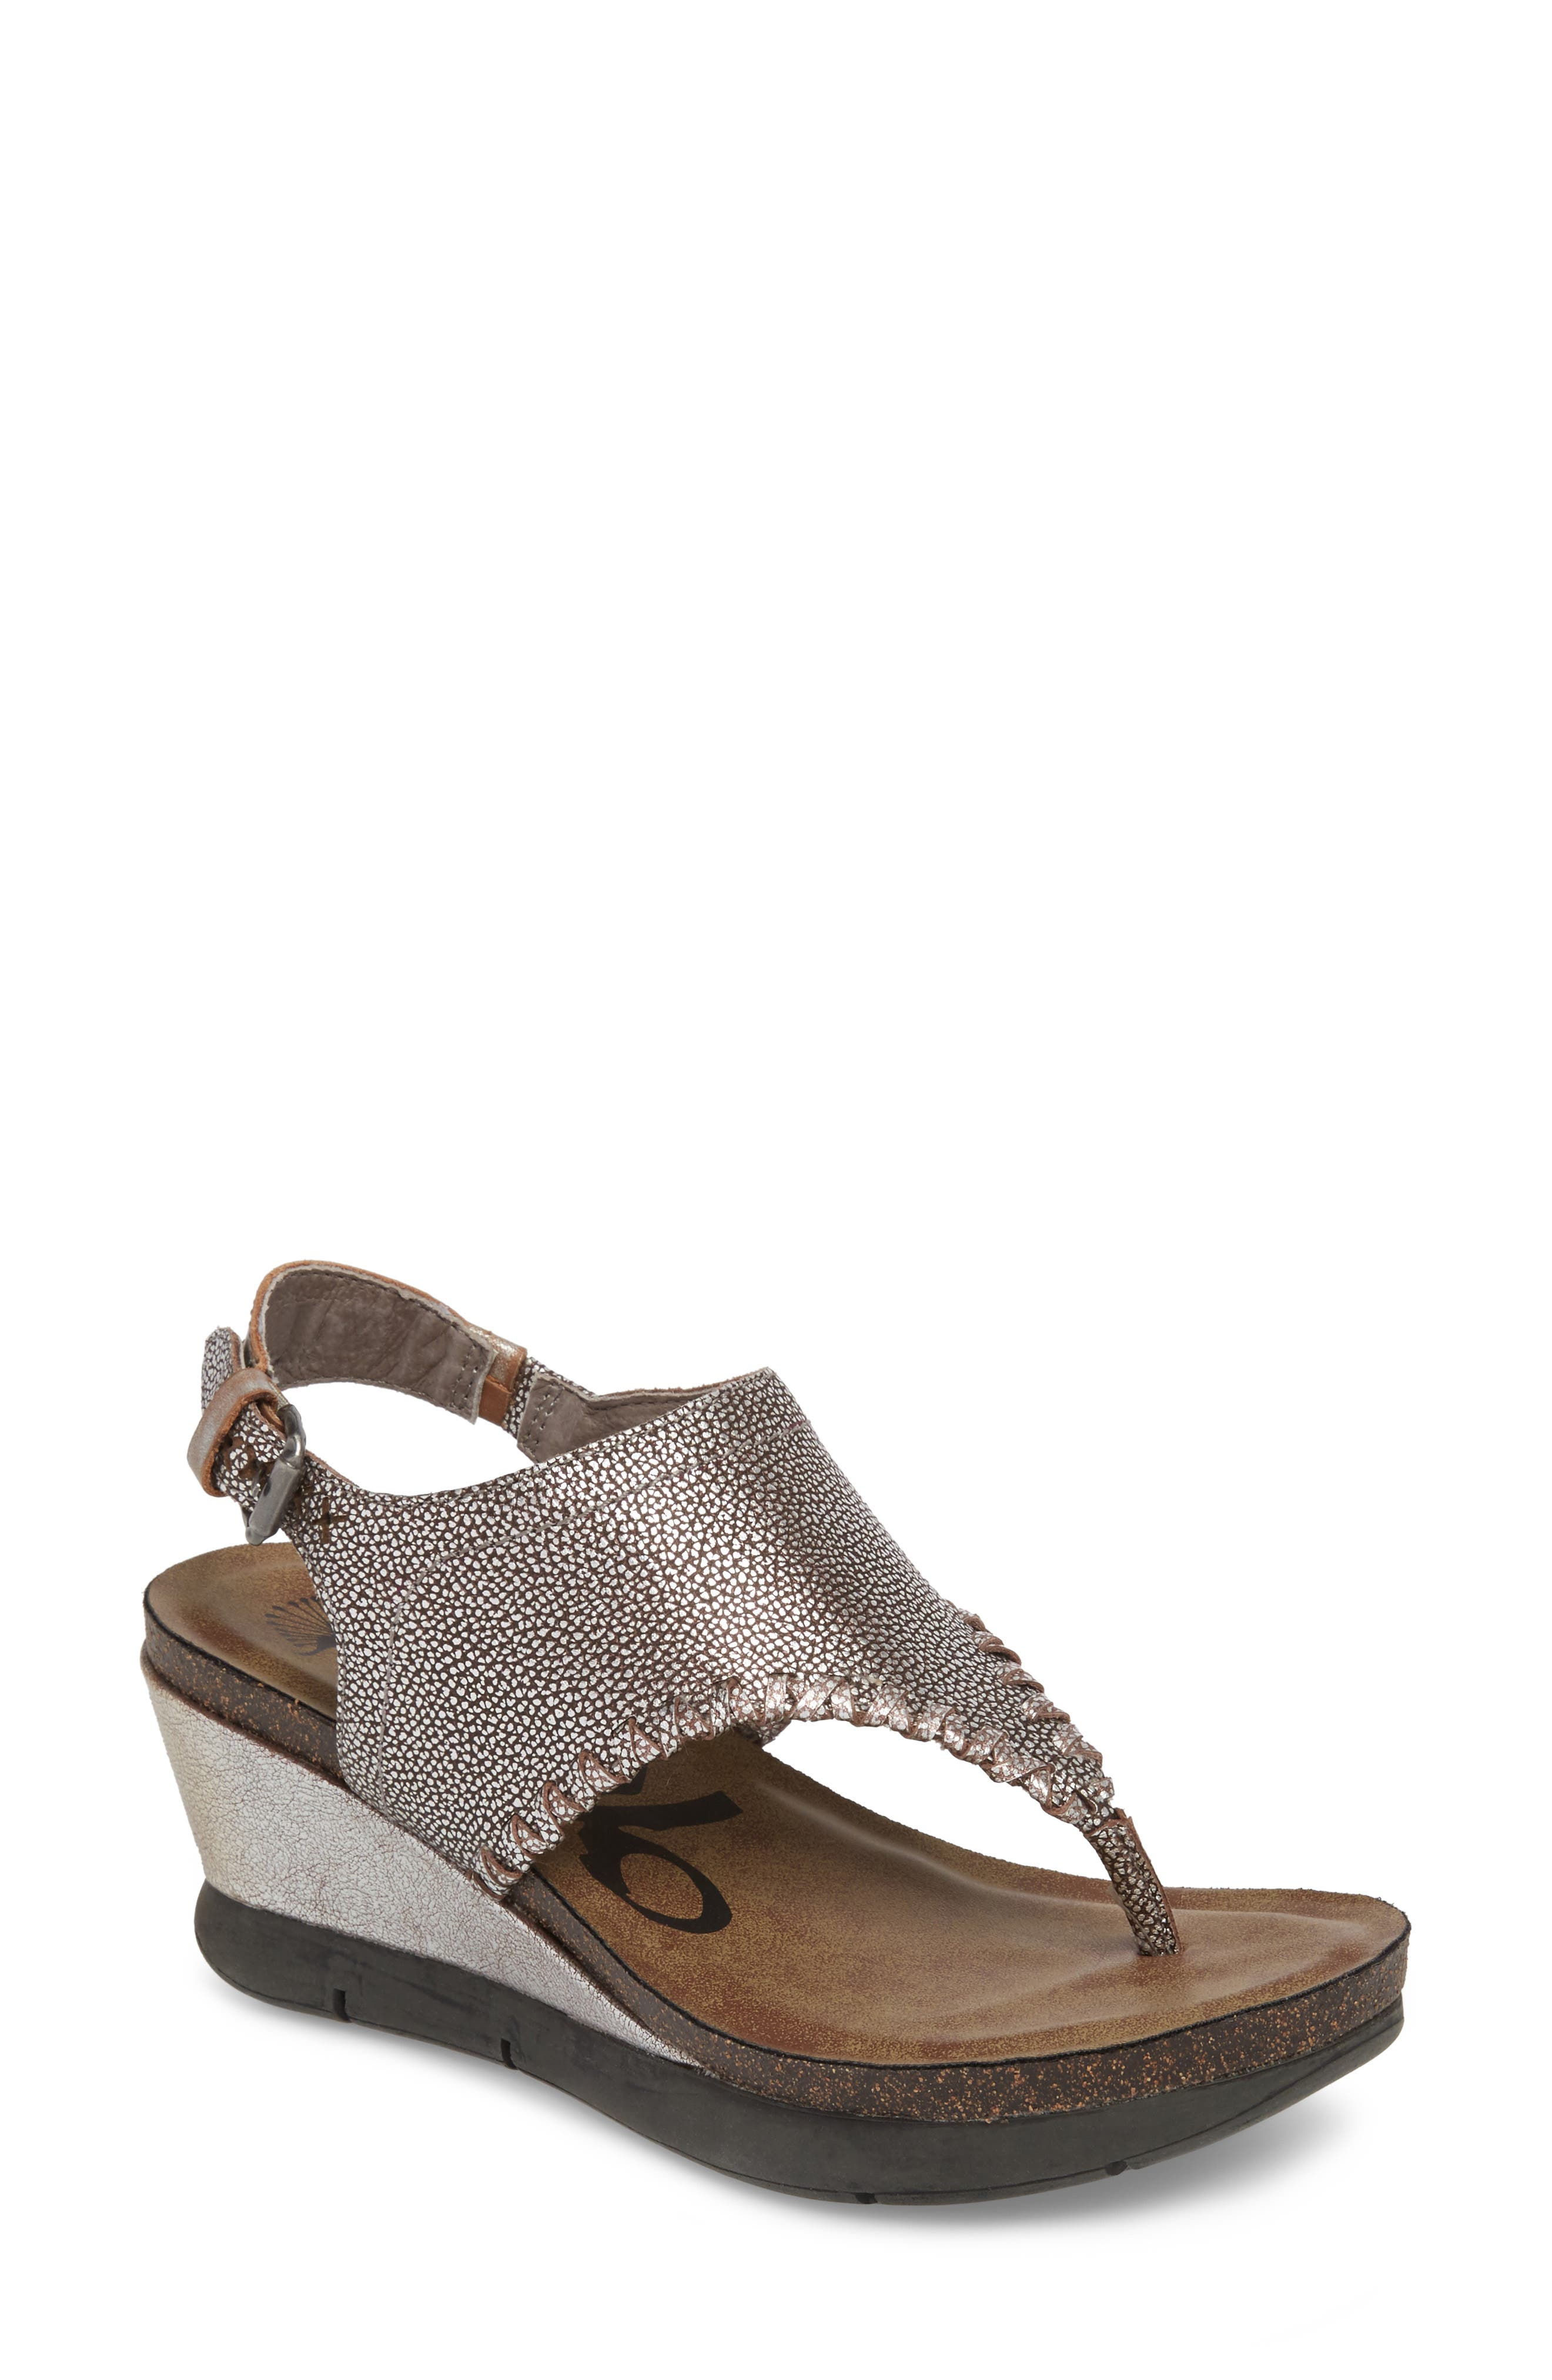 OTBT Meditate Wedge Sandal (Women)